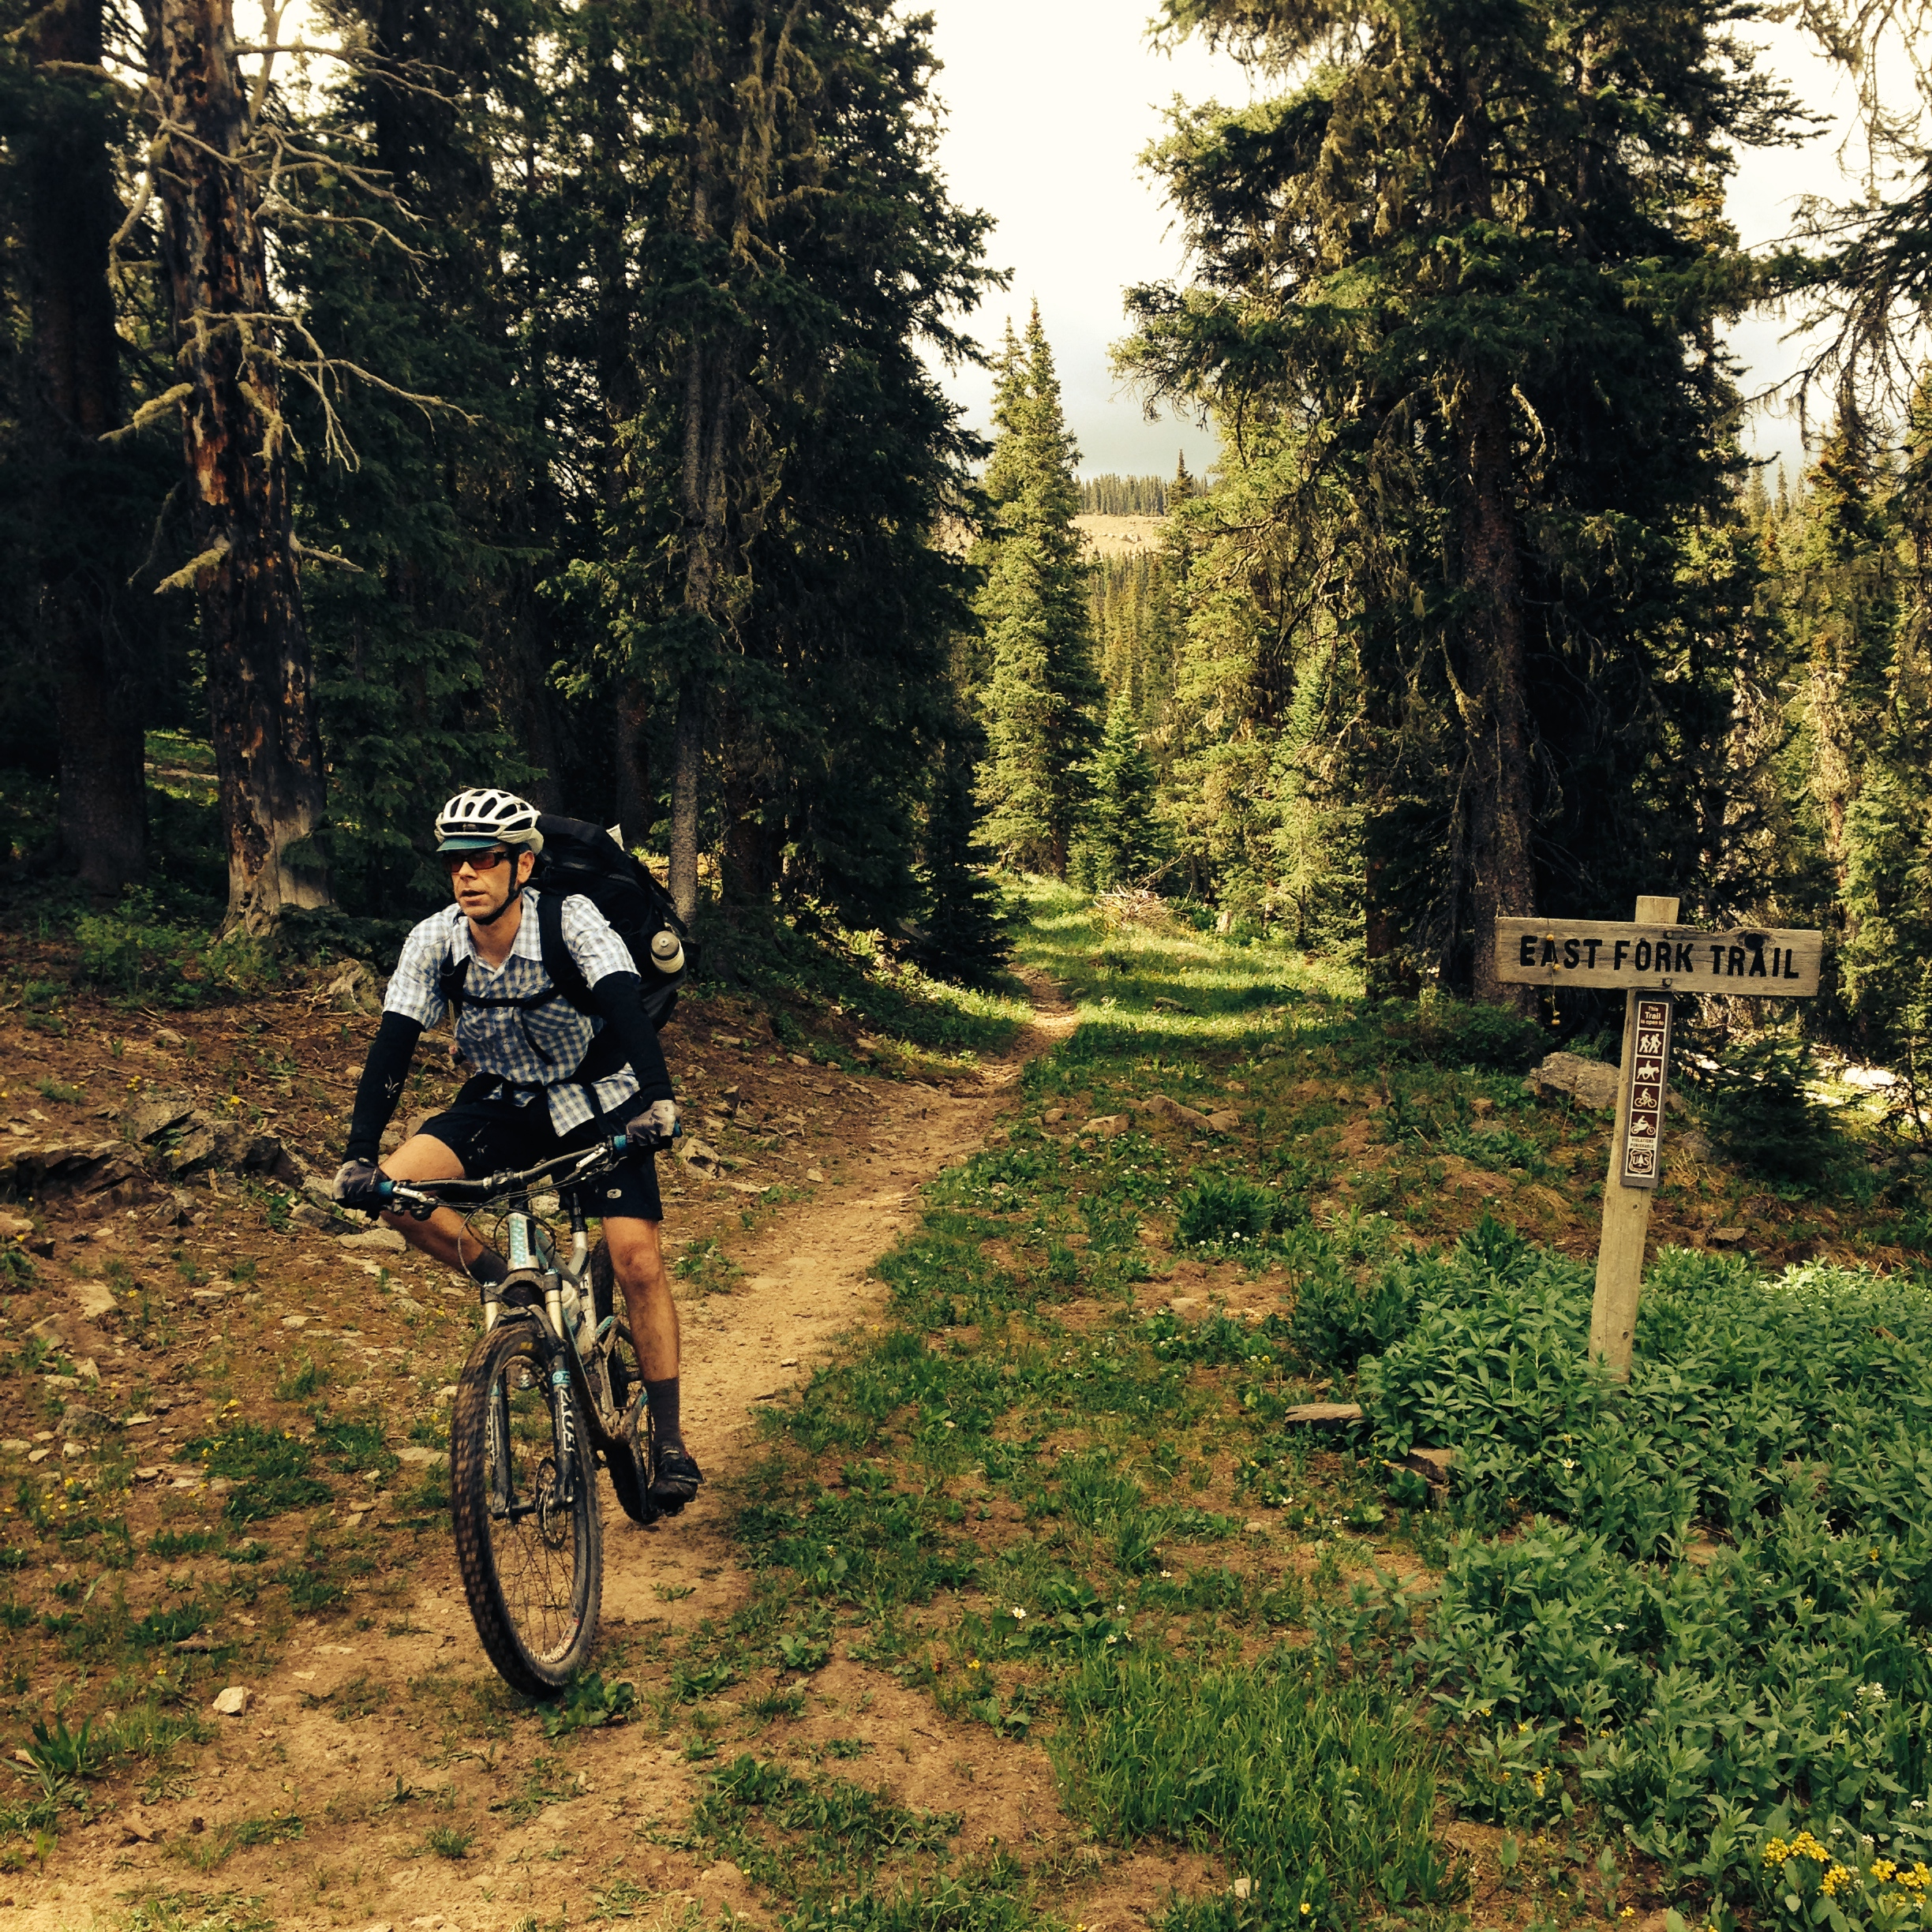 Epic decent on the East Fork Trail